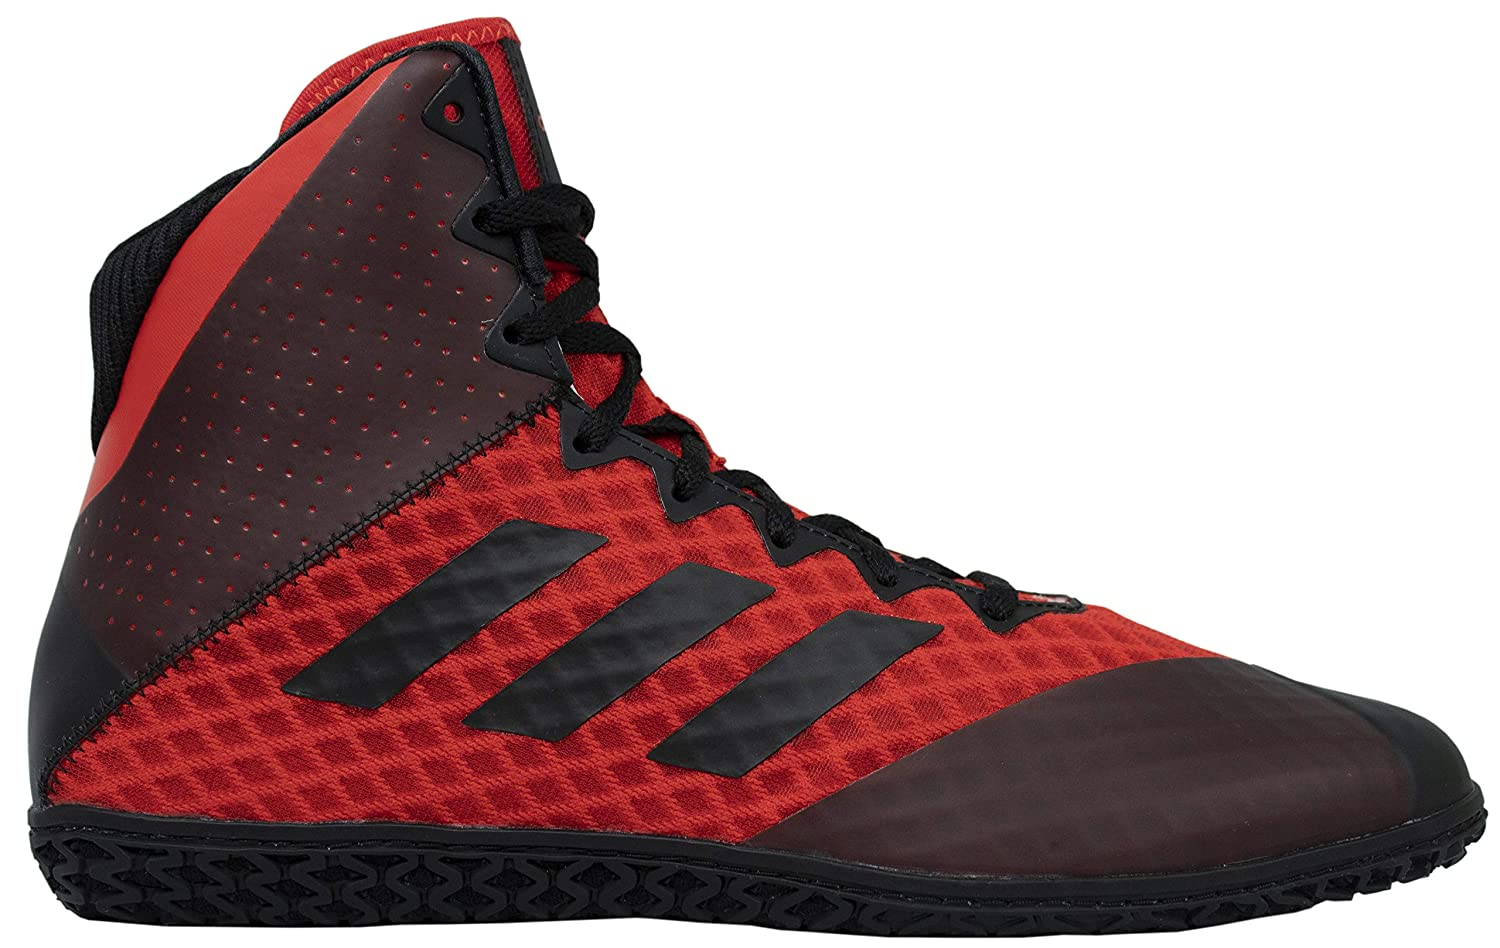 ADIDAS MAT WIZARD 4 REDBLACK BC0532 NEW FOR 2019 PRE ORDER NOW PRE ORDER FOR JULY DELIVERY!